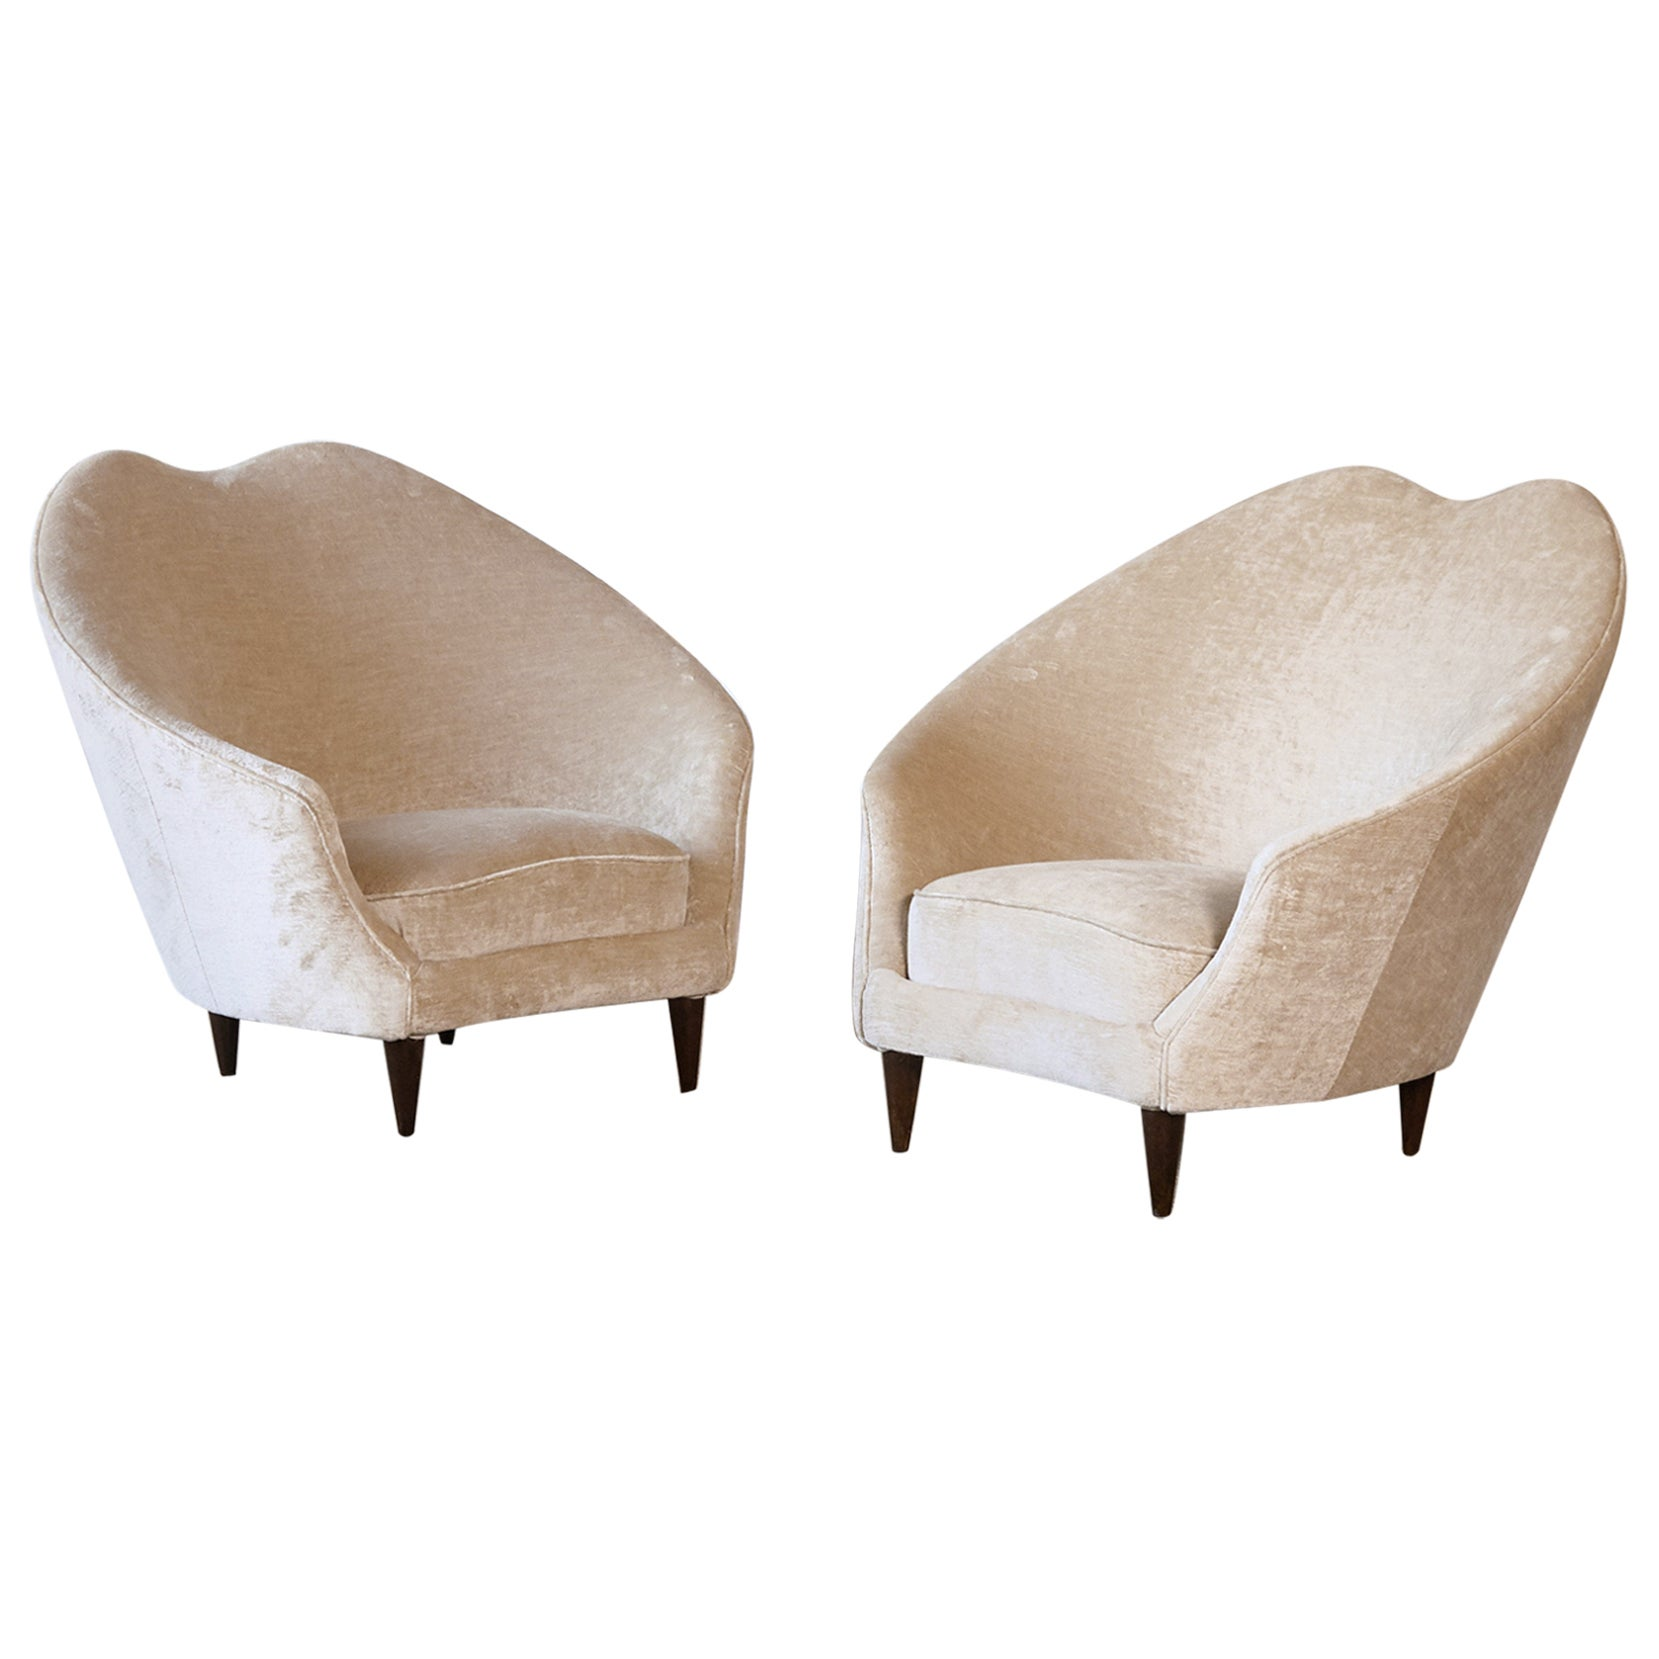 Pair of Federico Munari Lounge Chairs, Italy, 1950s